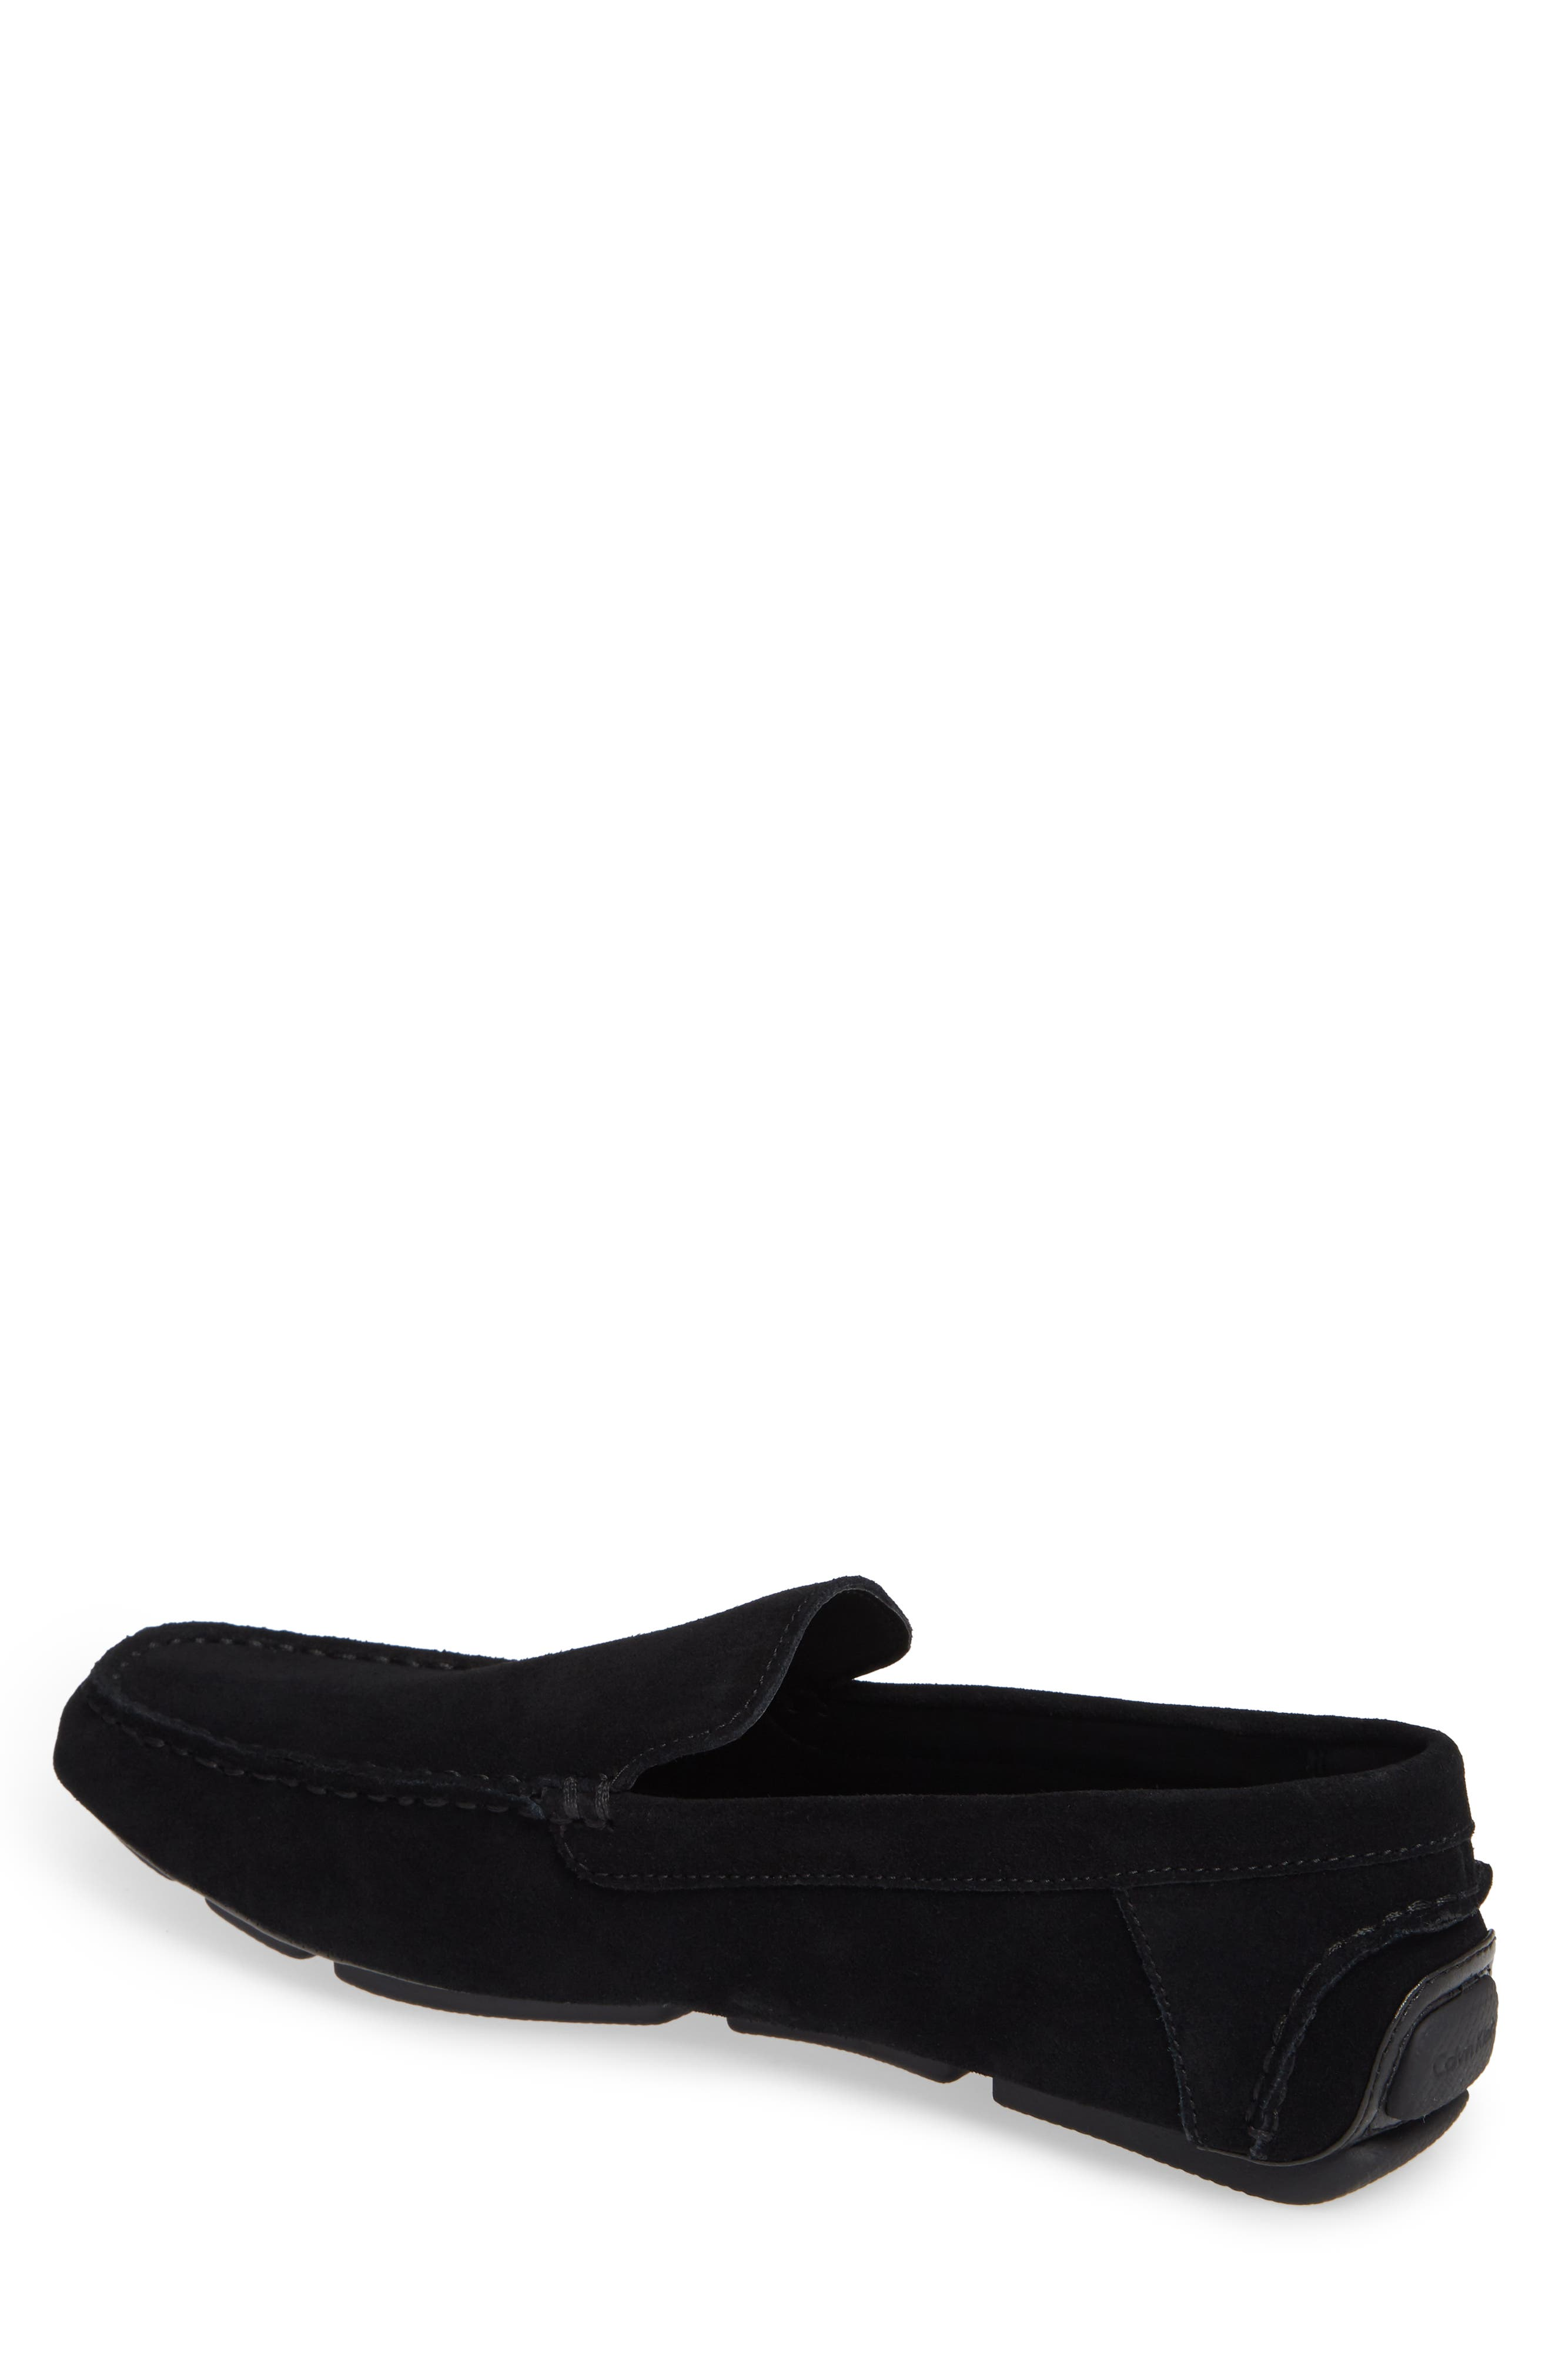 Miguel Textured Driving Loafer,                             Alternate thumbnail 2, color,                             BLACK CALF SUEDE